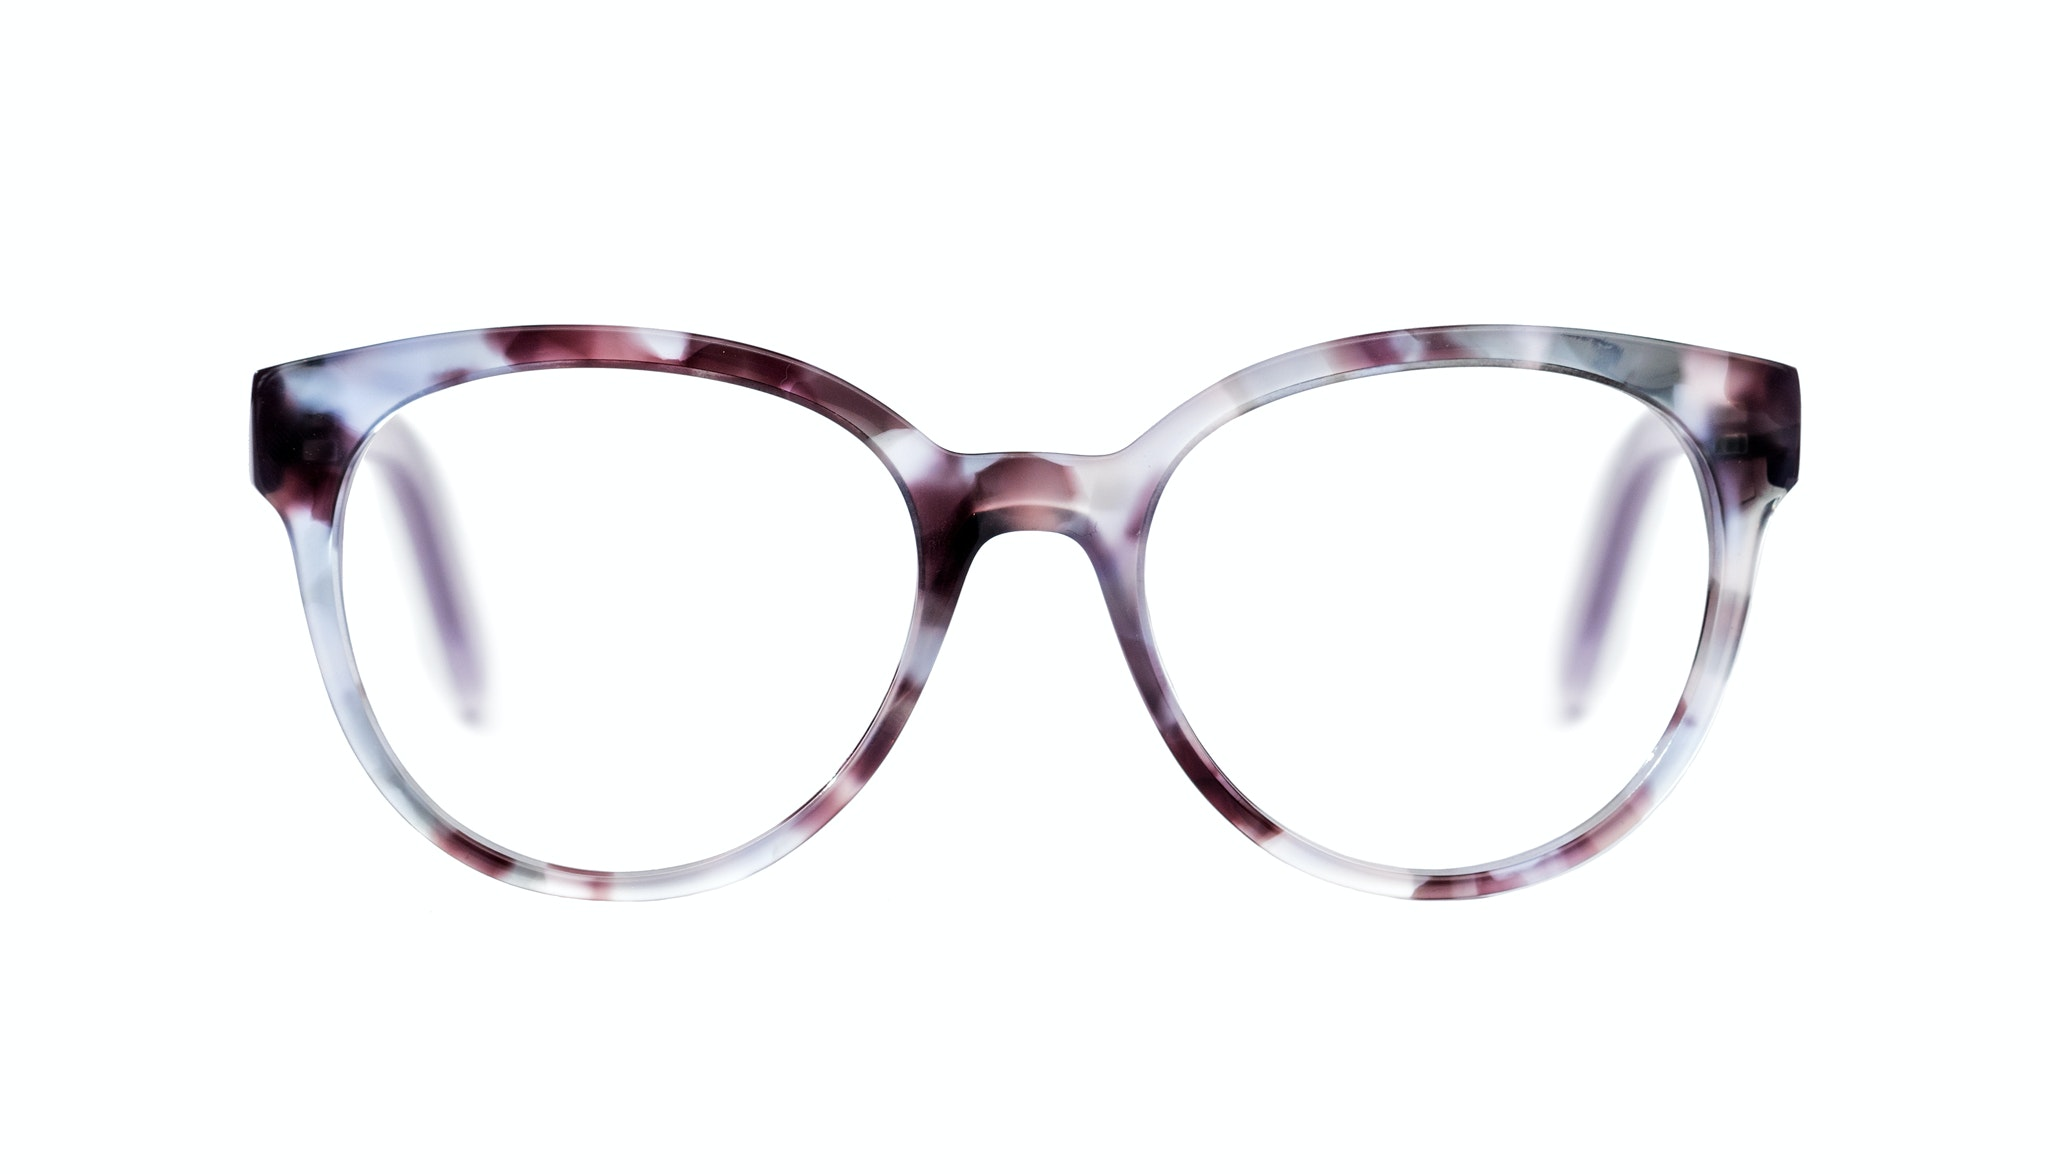 Affordable Fashion Glasses Cat Eye Round Eyeglasses Women Eclipse Lilac Tort Front